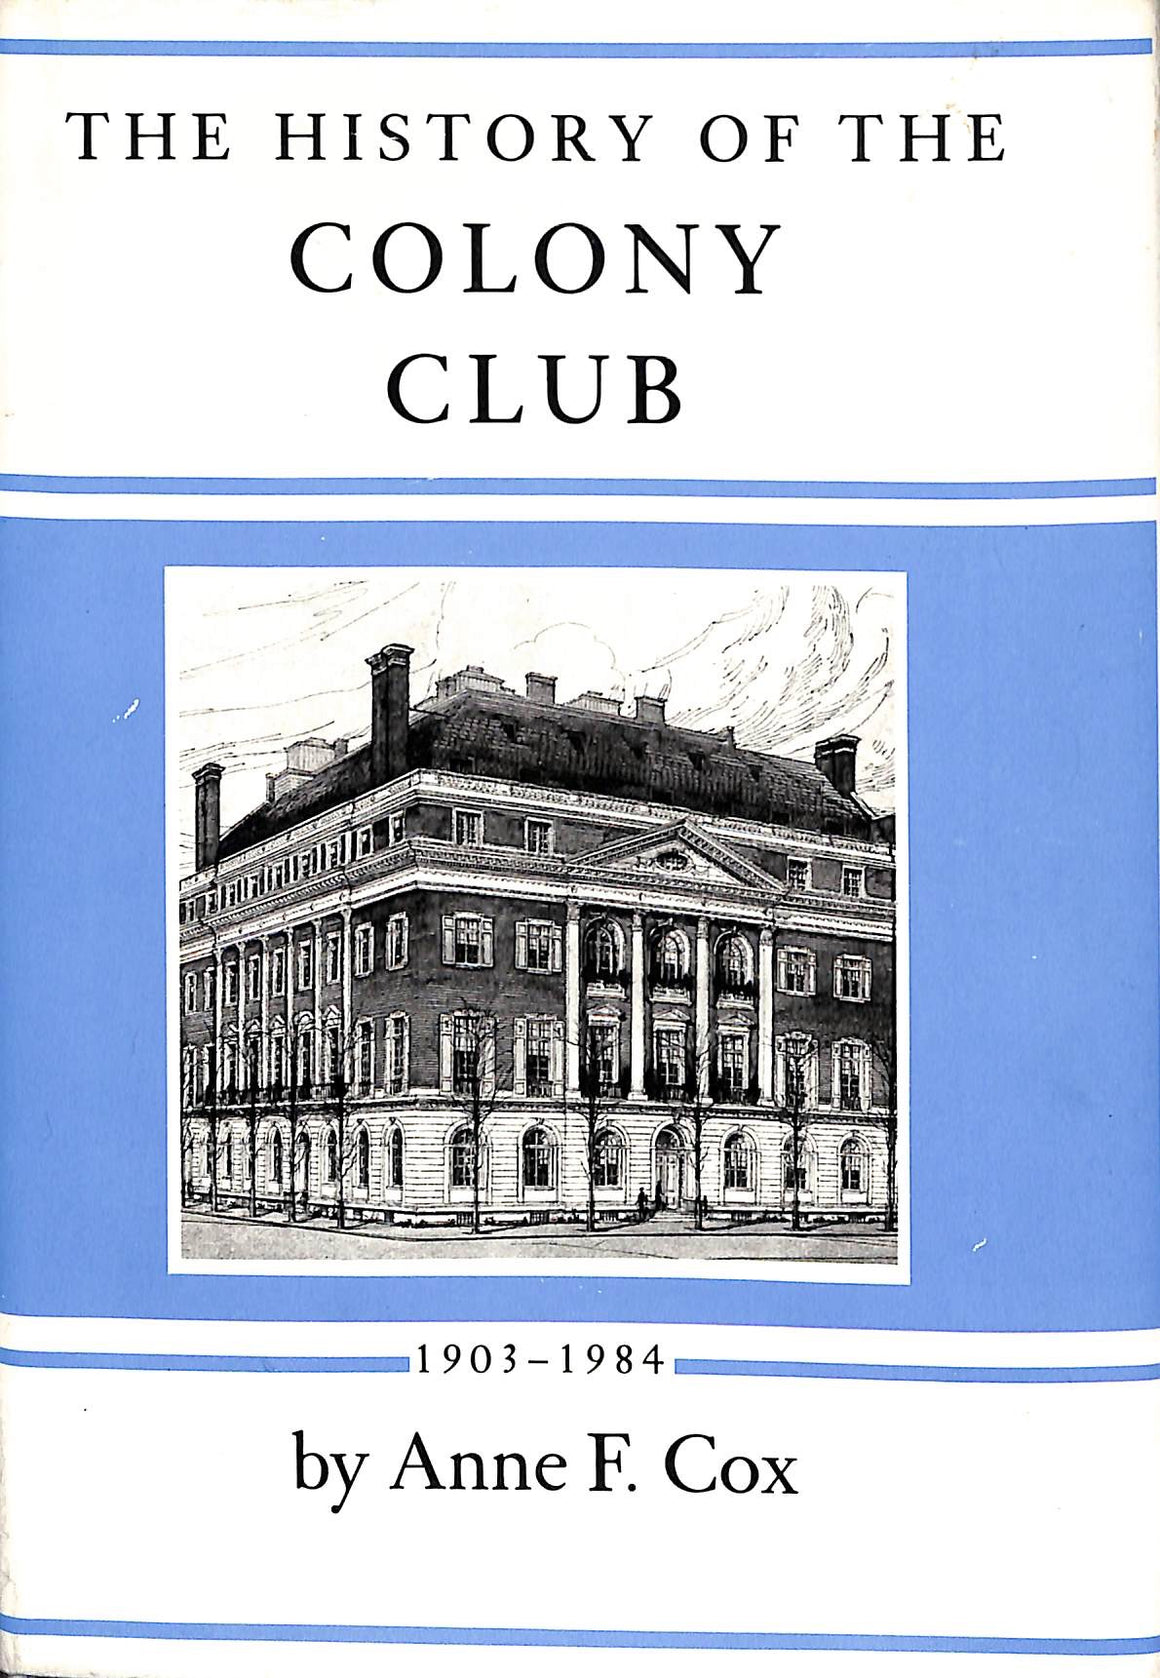 The History of the Colony Club 1903-1984 by Anne F. Cox (SOLD)